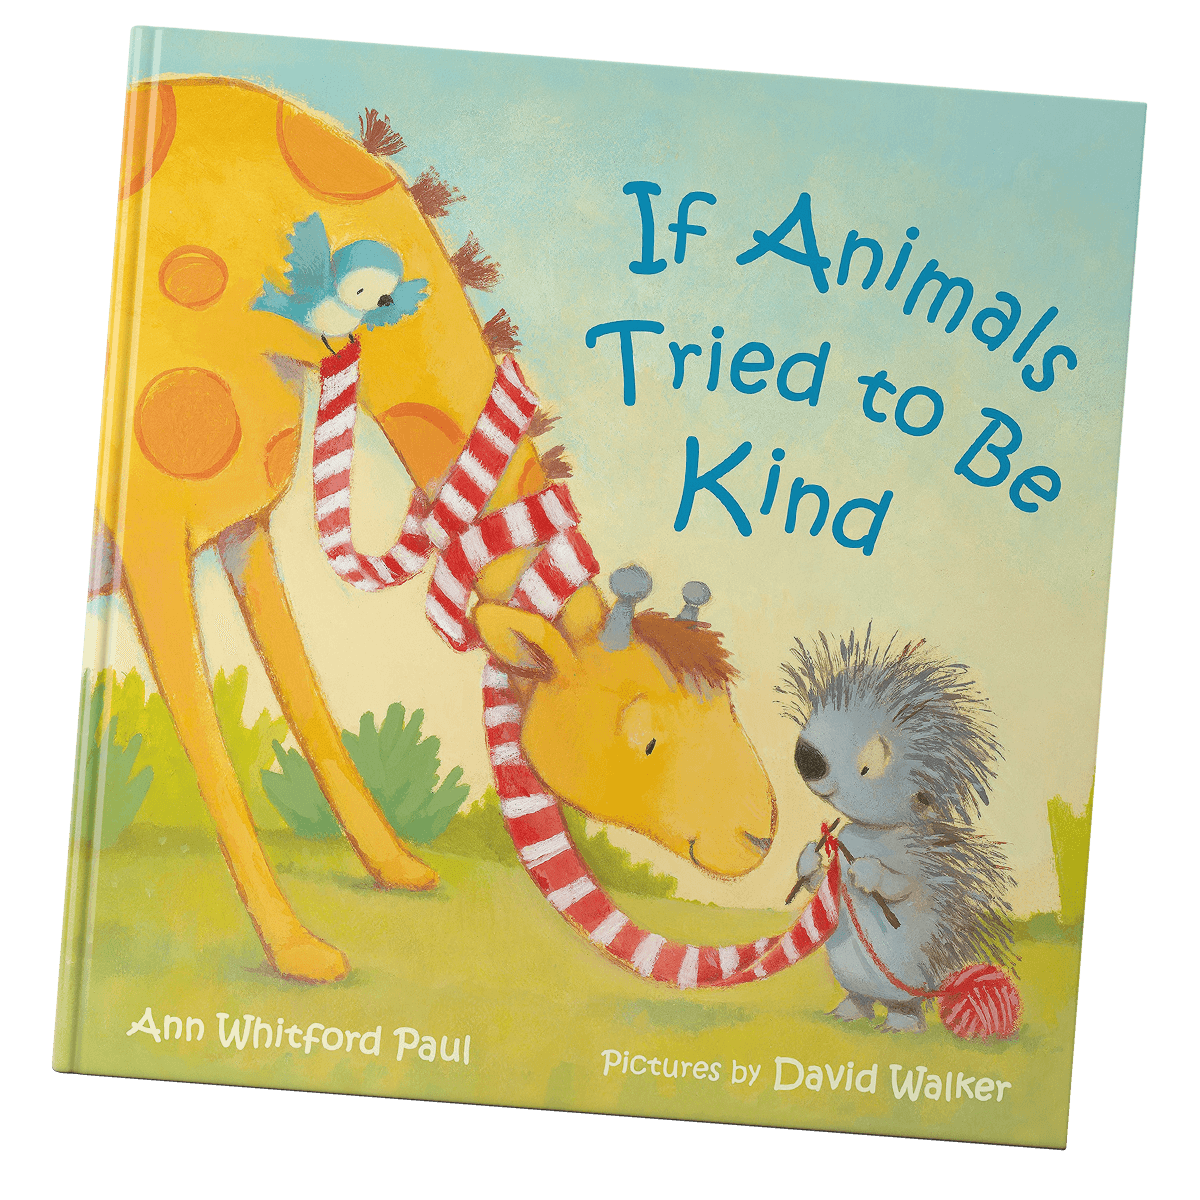 If Animals Went to School by Ann Whitford Paul